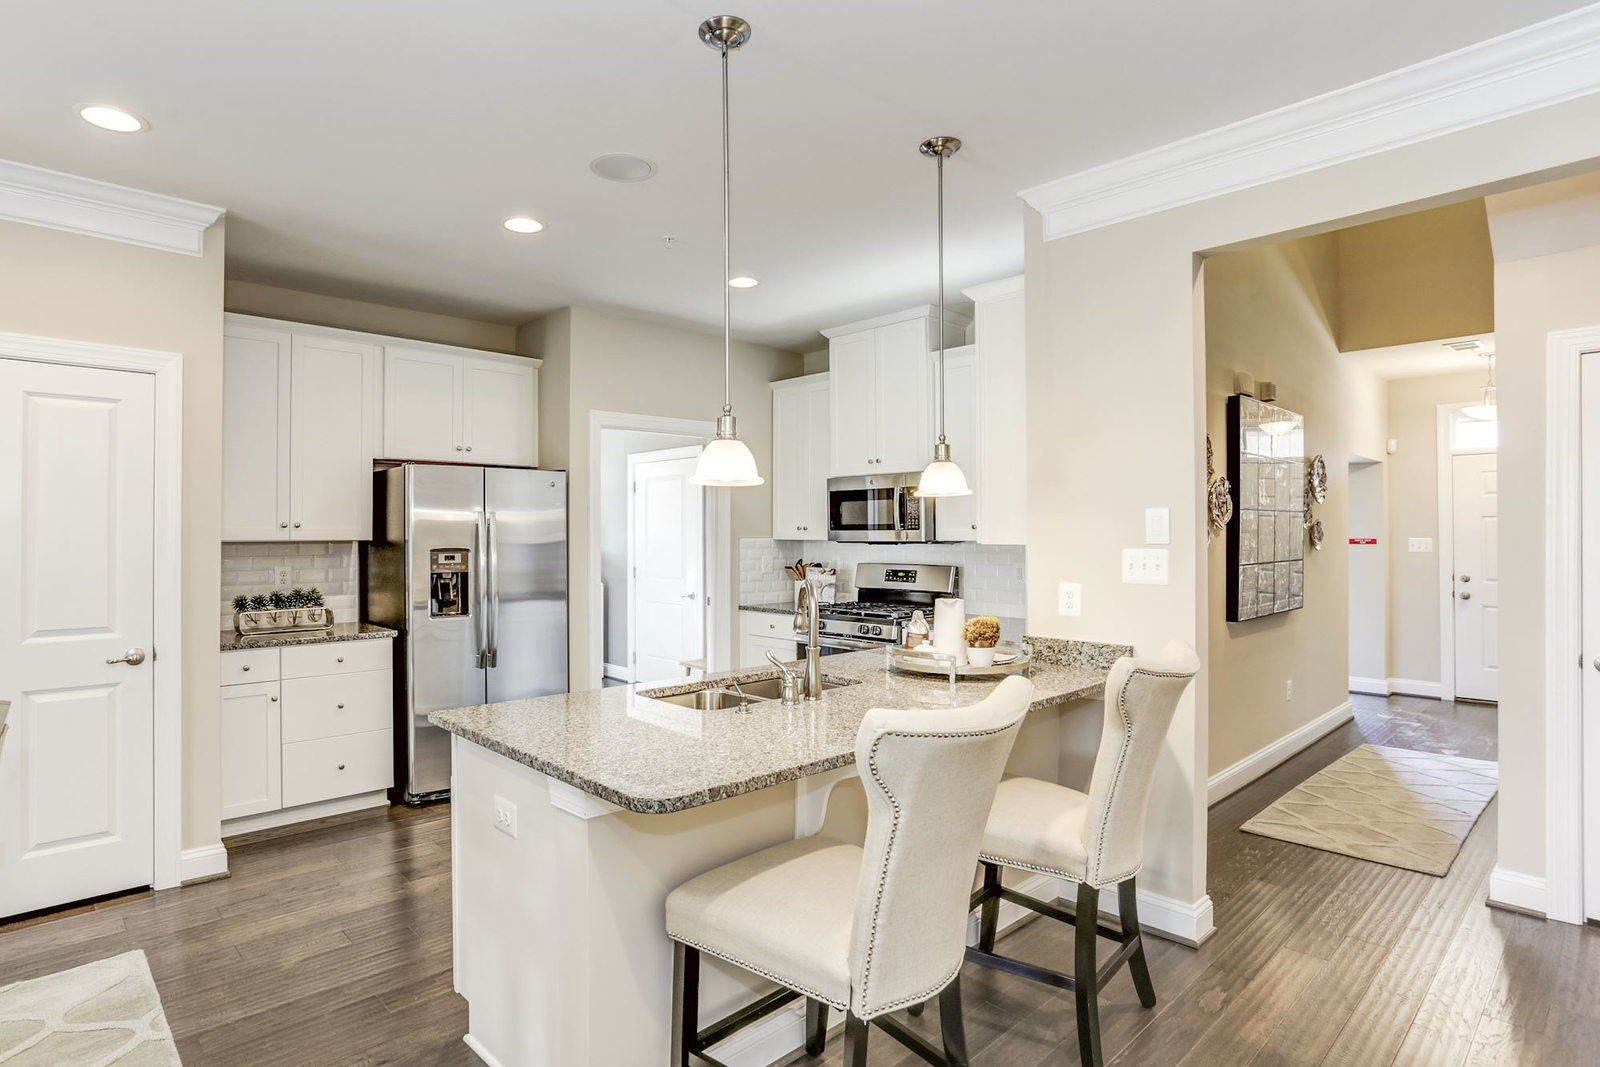 New Construction Townhomes For Sale -Griffin-Hall-Ryan Homes on